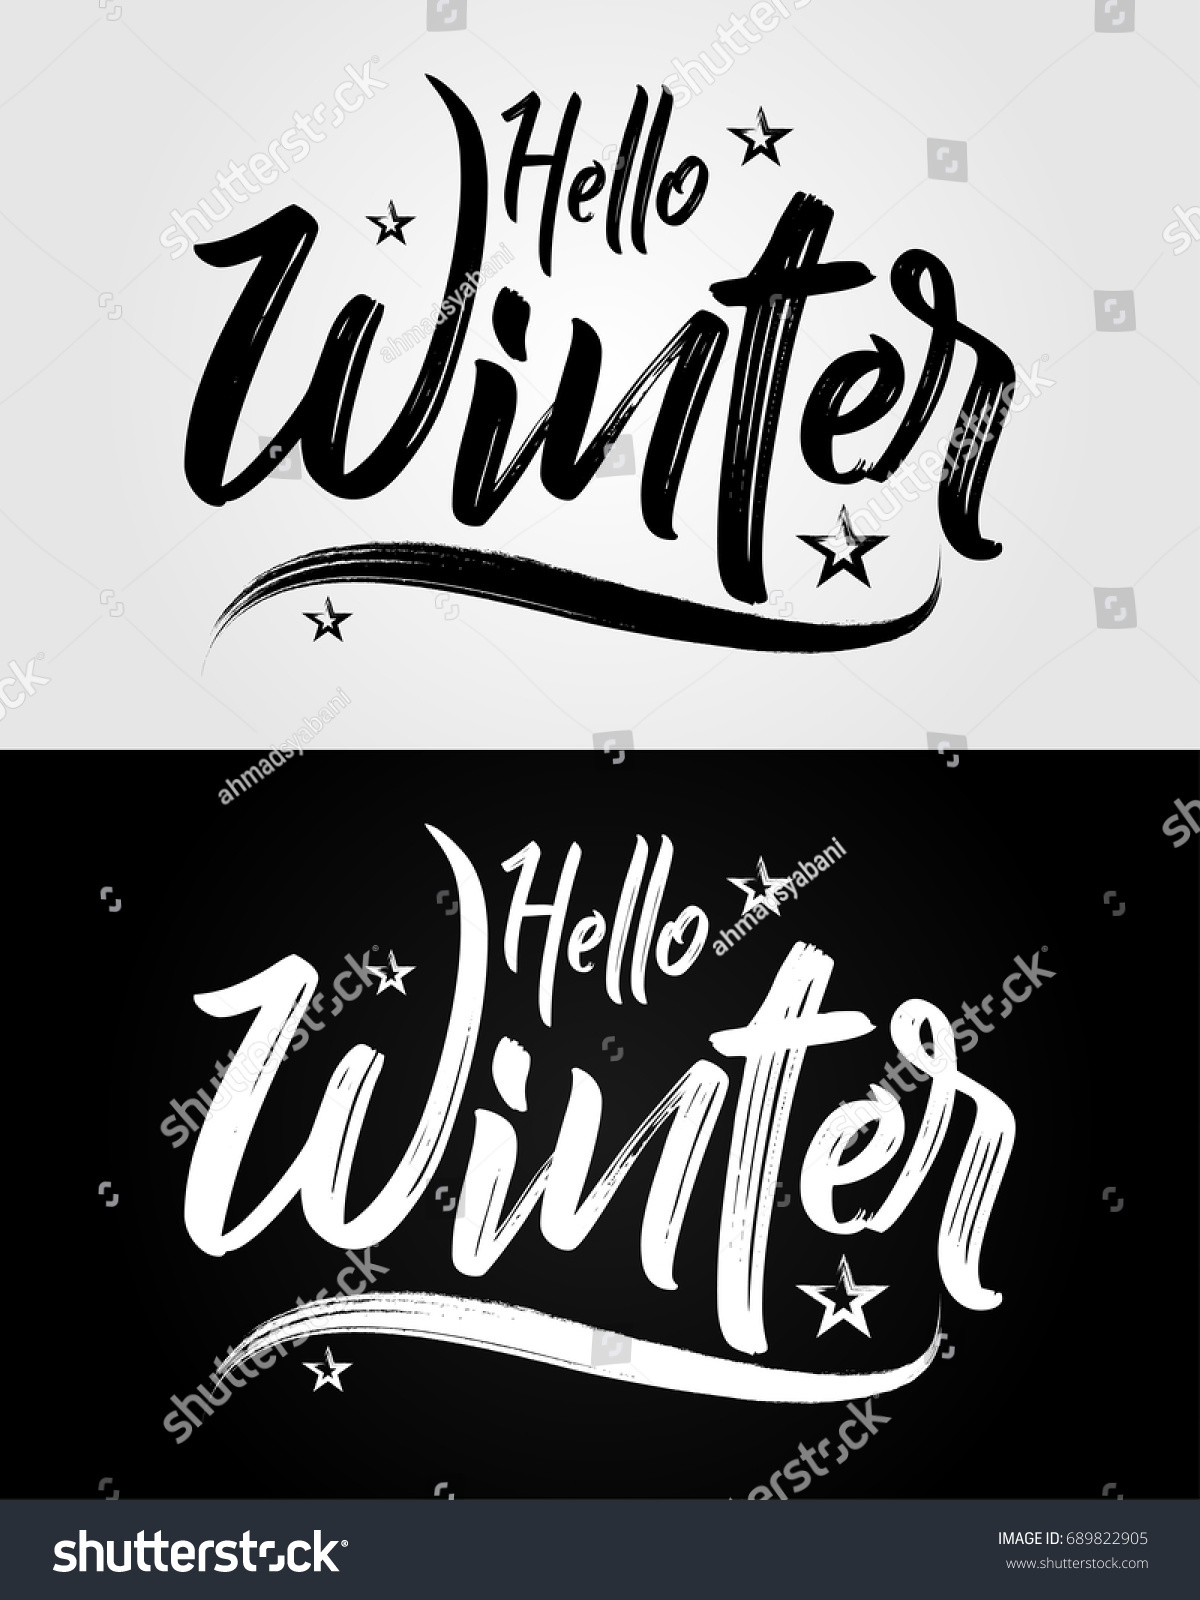 Hello Winter   Grunge Brush   Vector For Greeting, Celebrate, Holiday,  Season